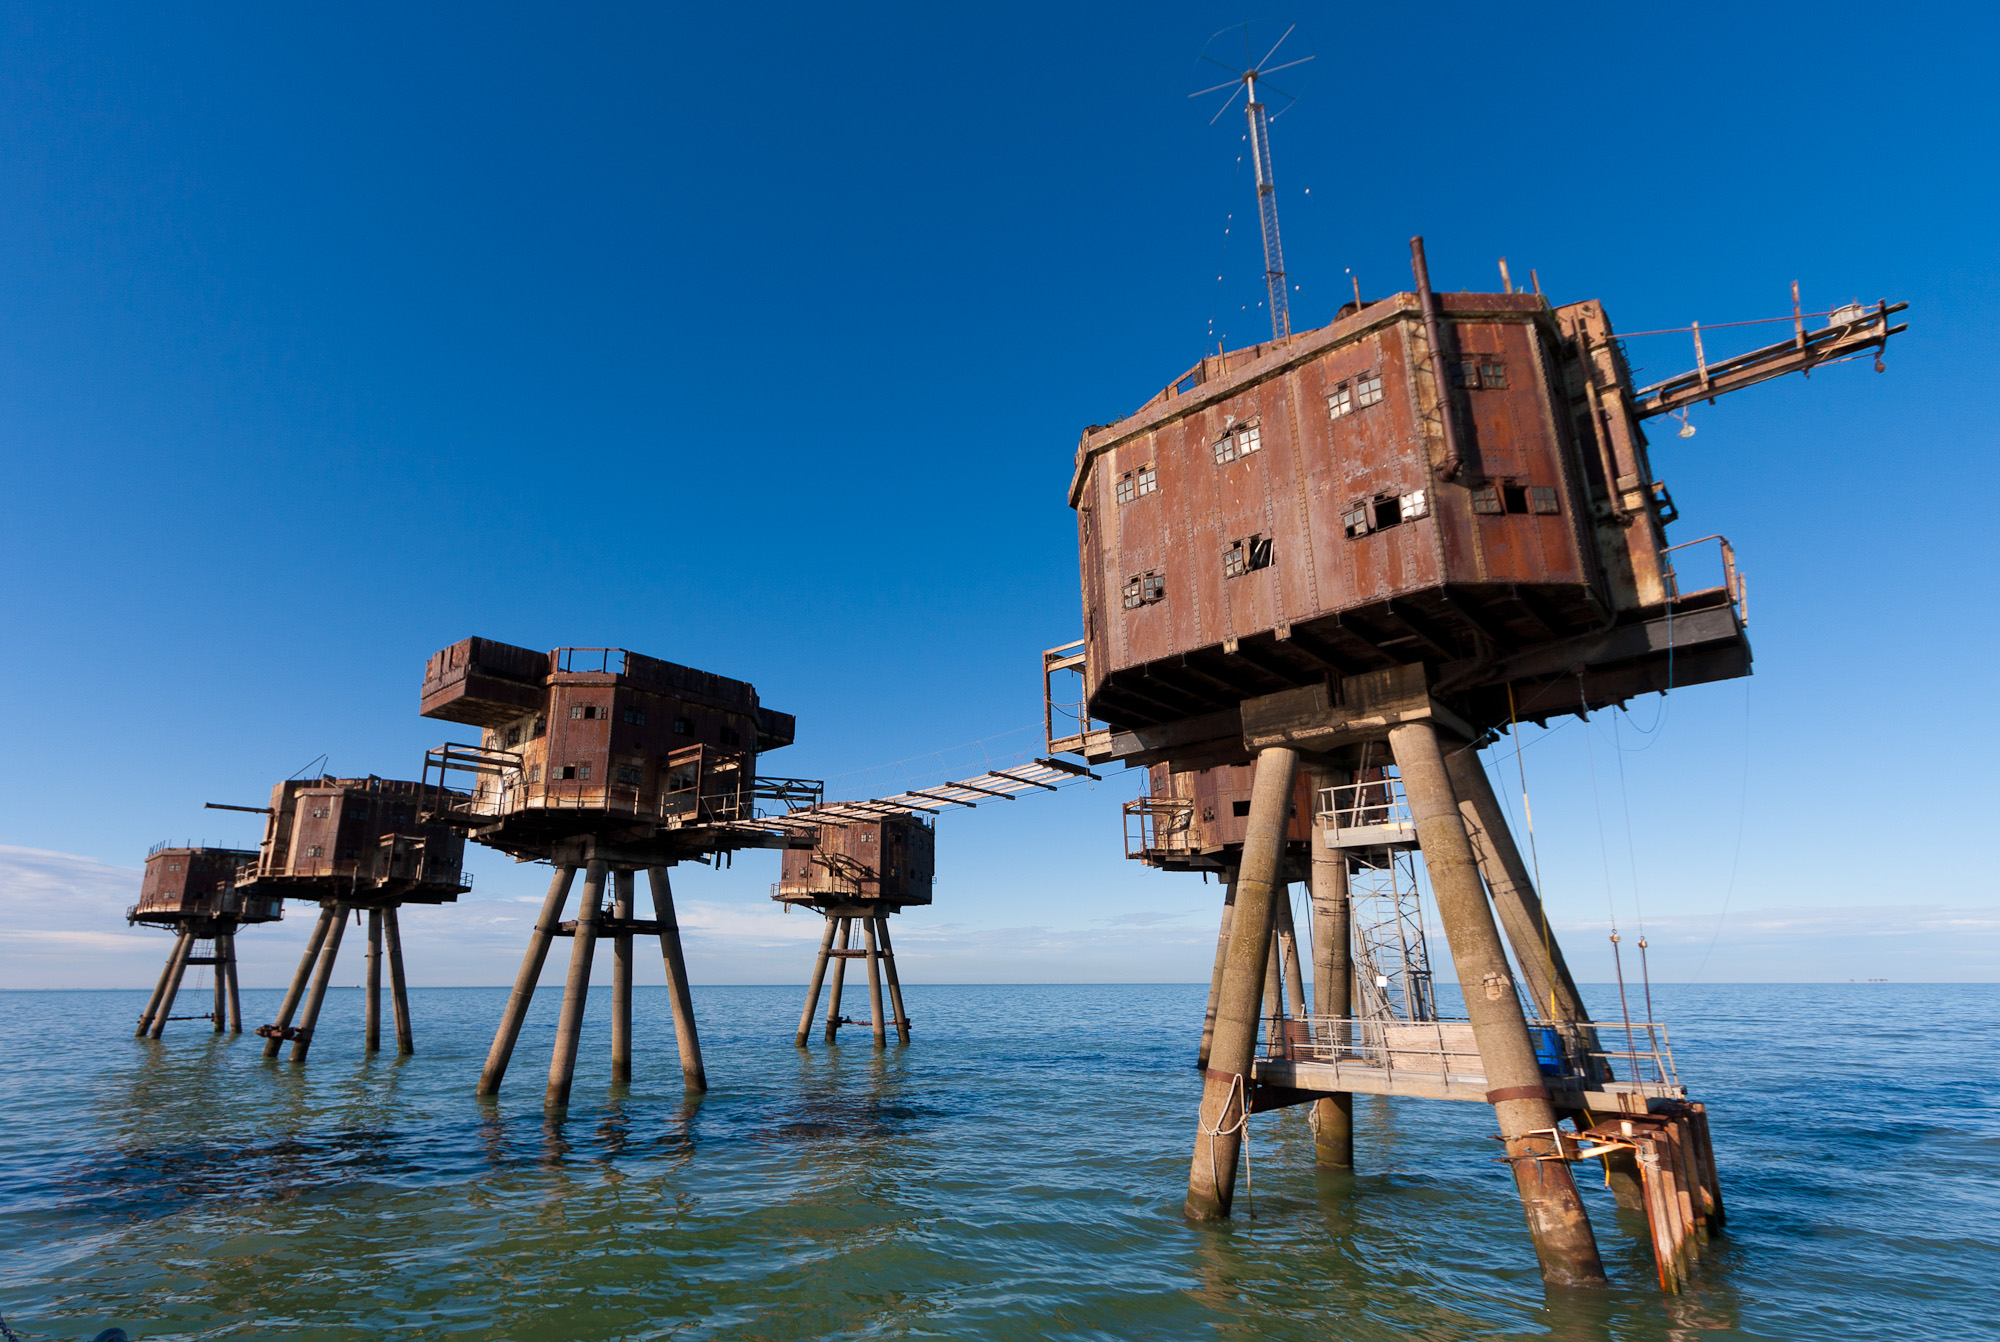 Maunsell Forts - Flickr: Russss